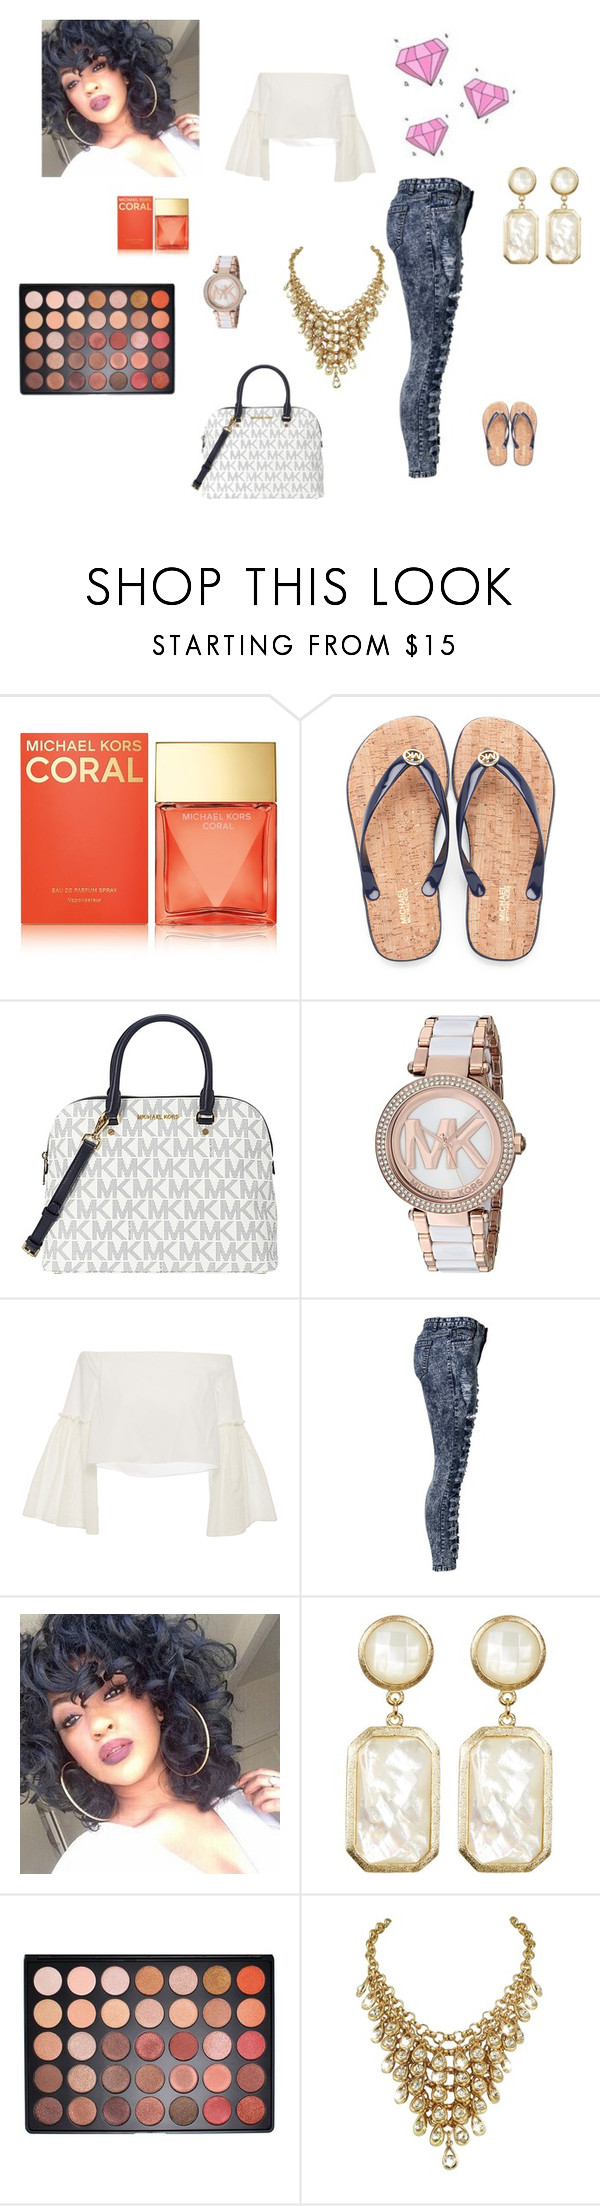 """Michael Kors"" by queenraina1 on Polyvore featuring Michael Kors, Rosetta Getty, Rivka Friedman and Morphe"